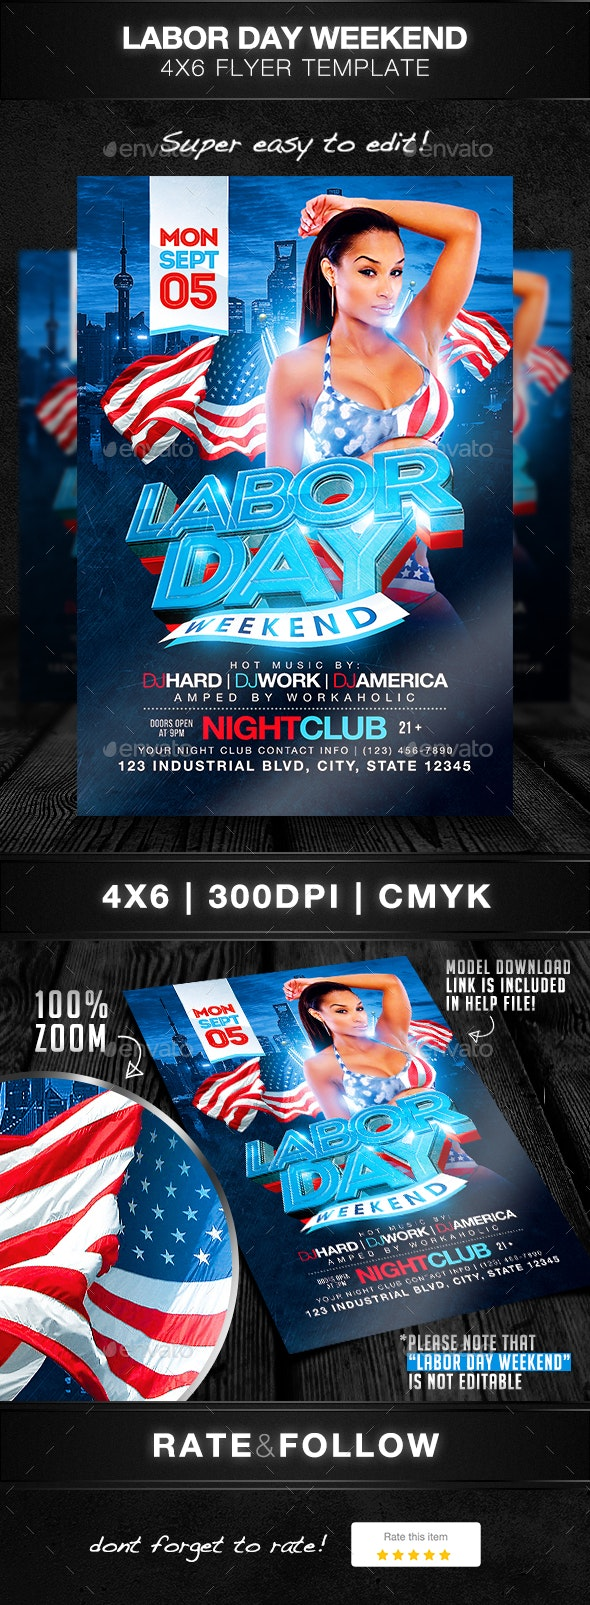 Labor Day Weekend Flyer Template - Clubs & Parties Events